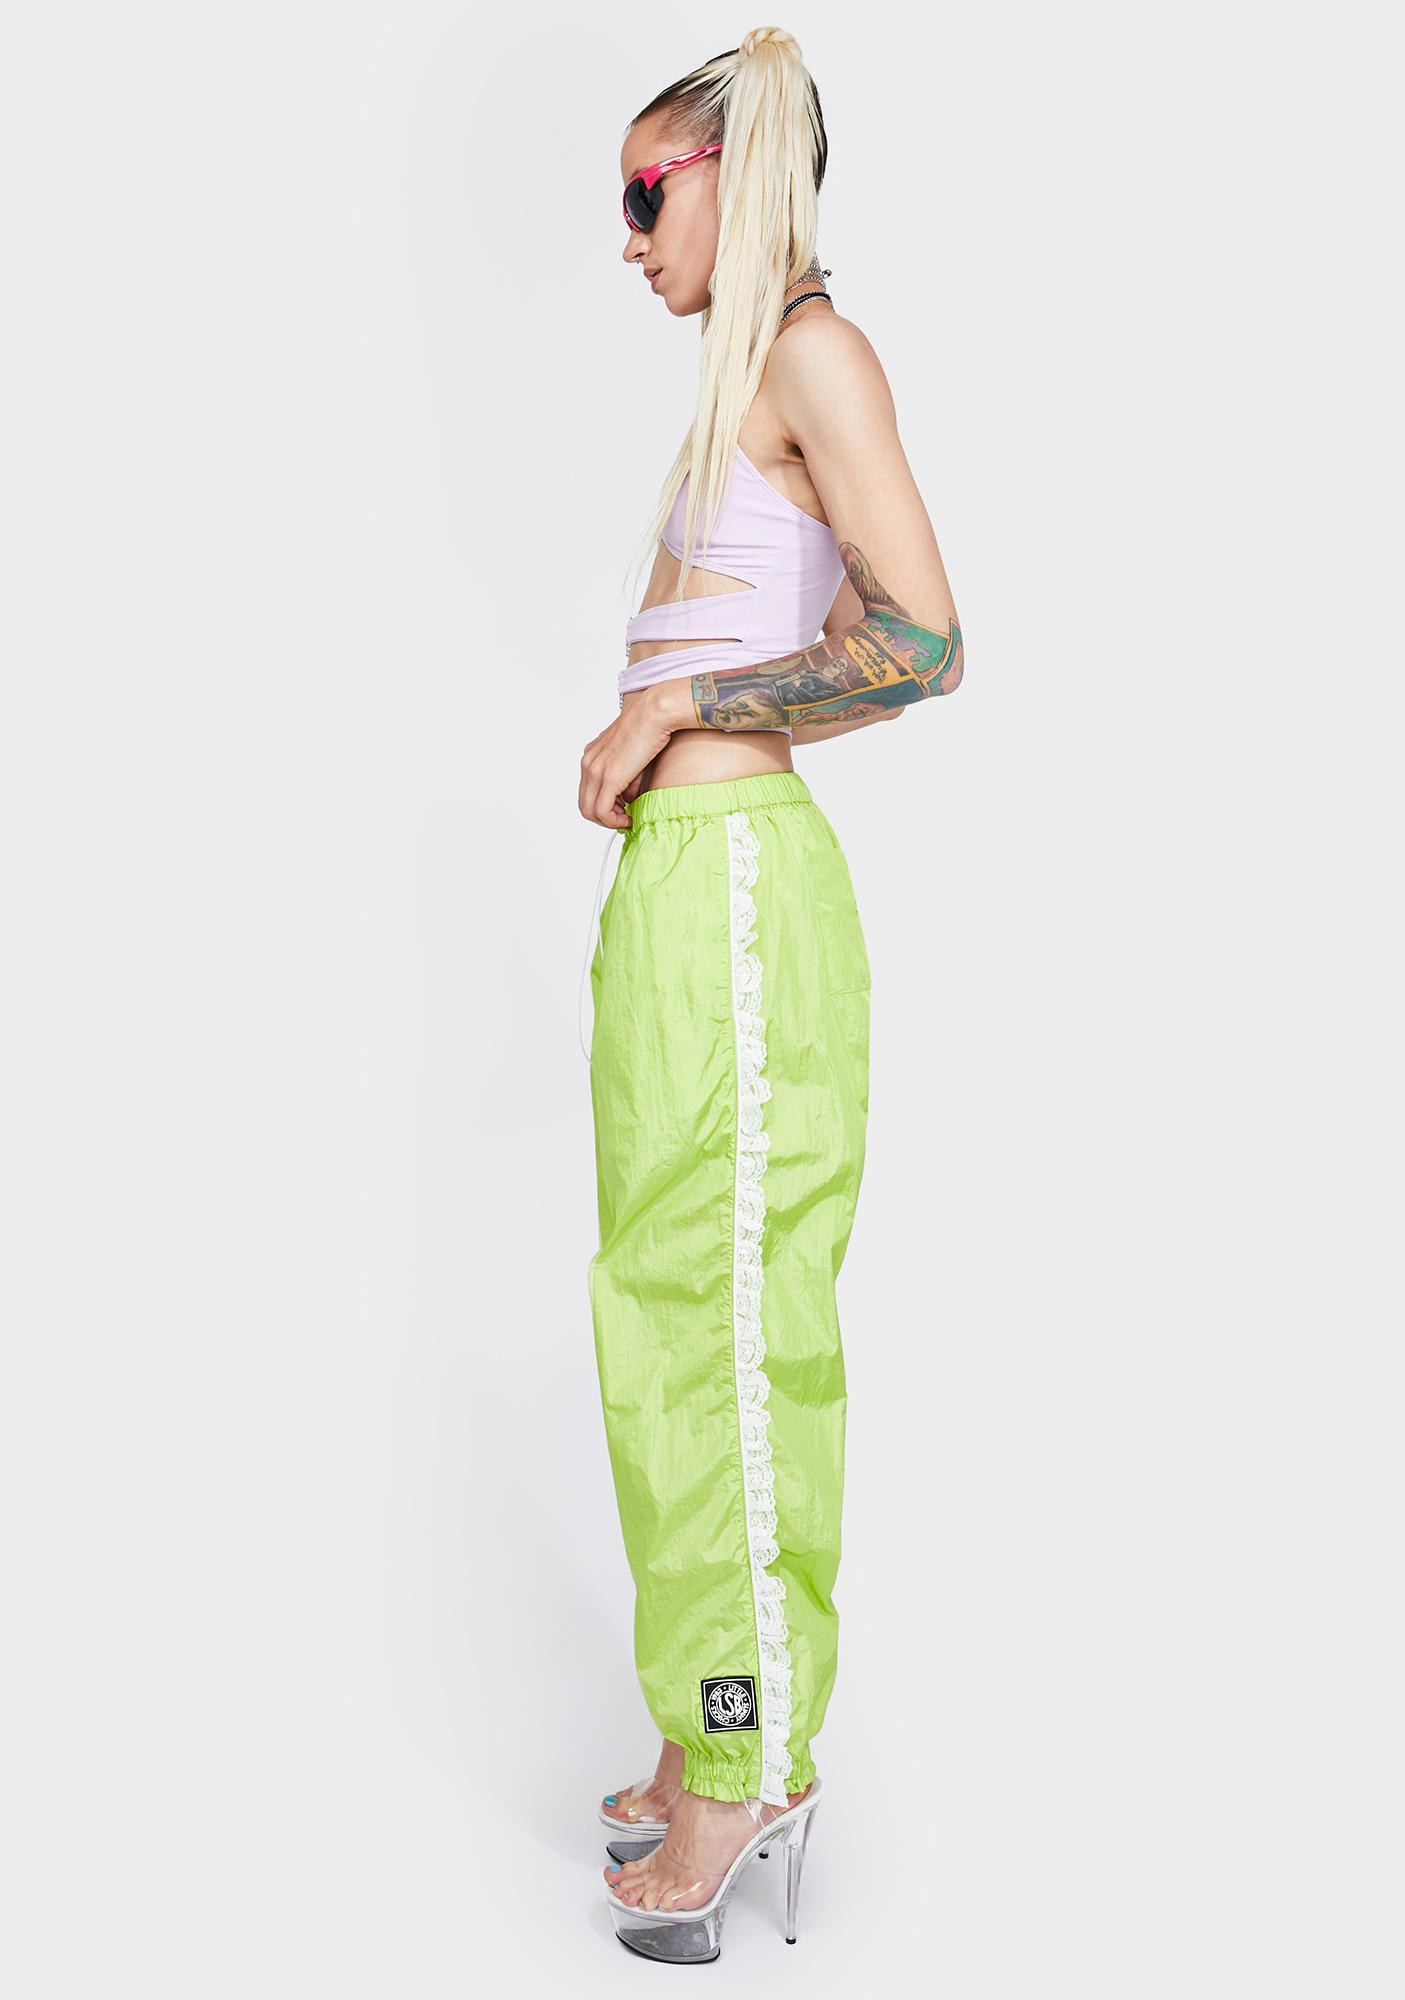 Little Sunny Bite Nylon Girly Track Pants